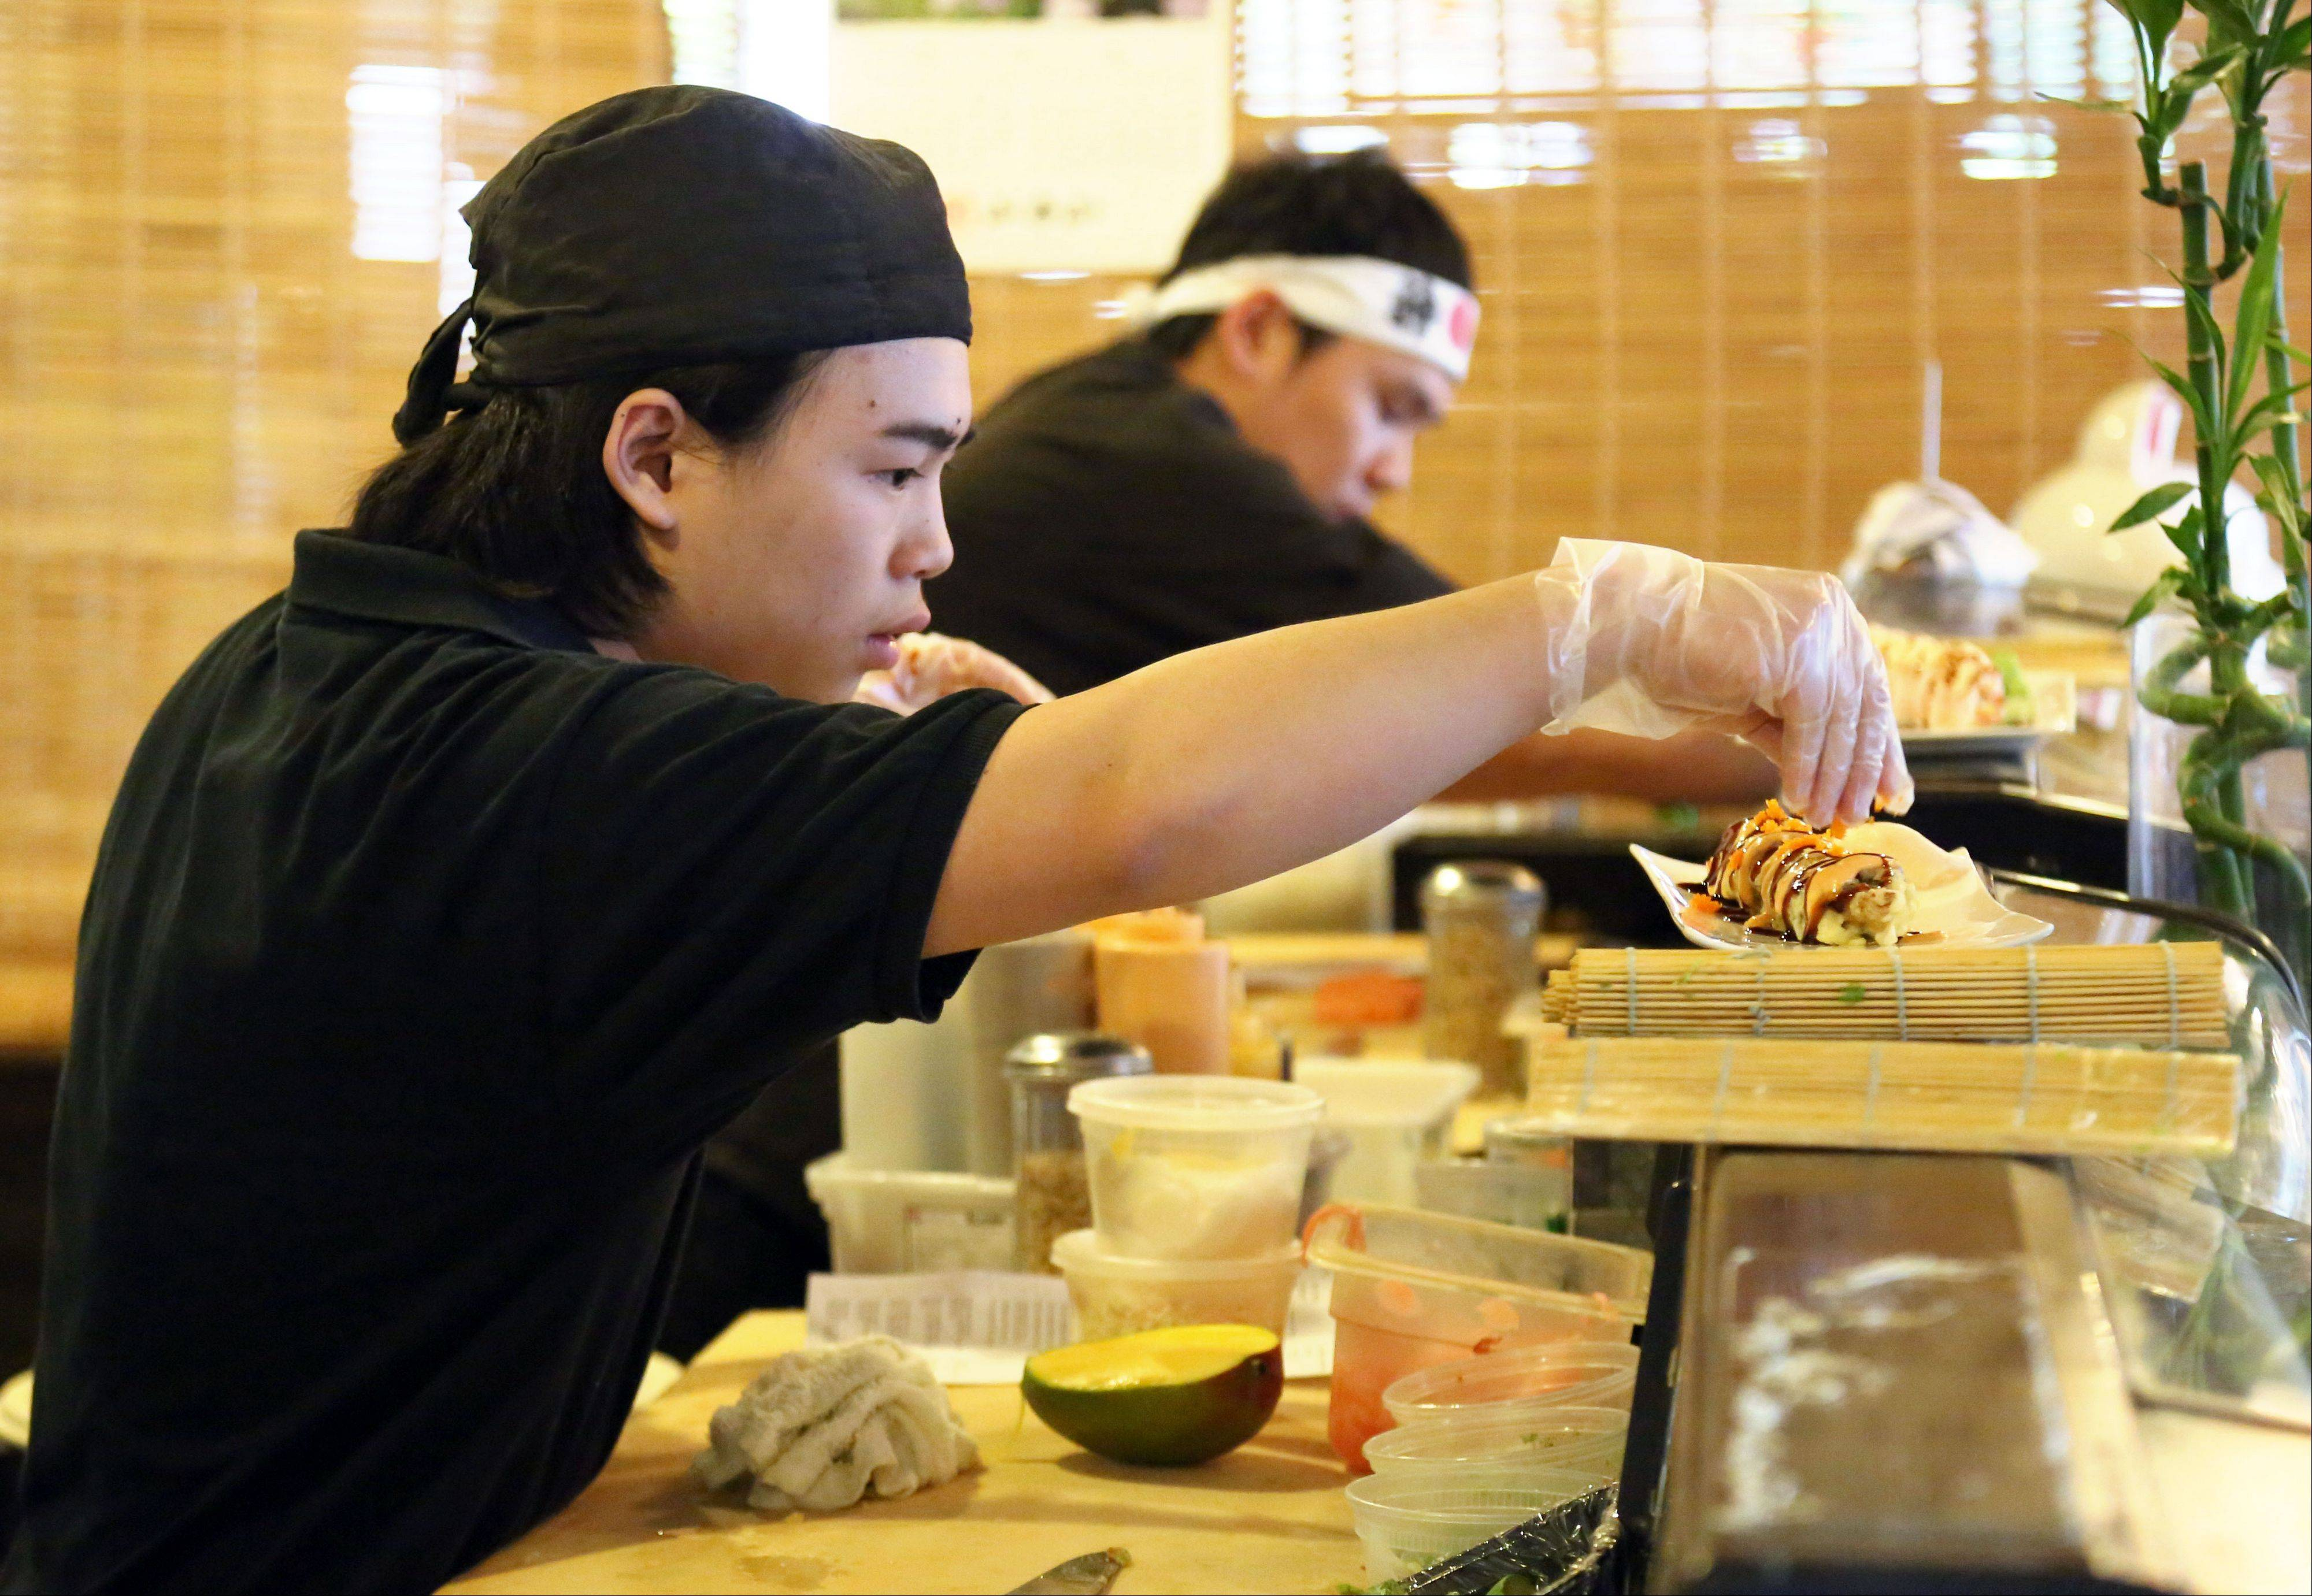 Sushi chefs Andy Au, left, and Jimmy Li create satisfying rolls at Kawa Japanese Restaurant and Mongolian Grill in Grayslake.